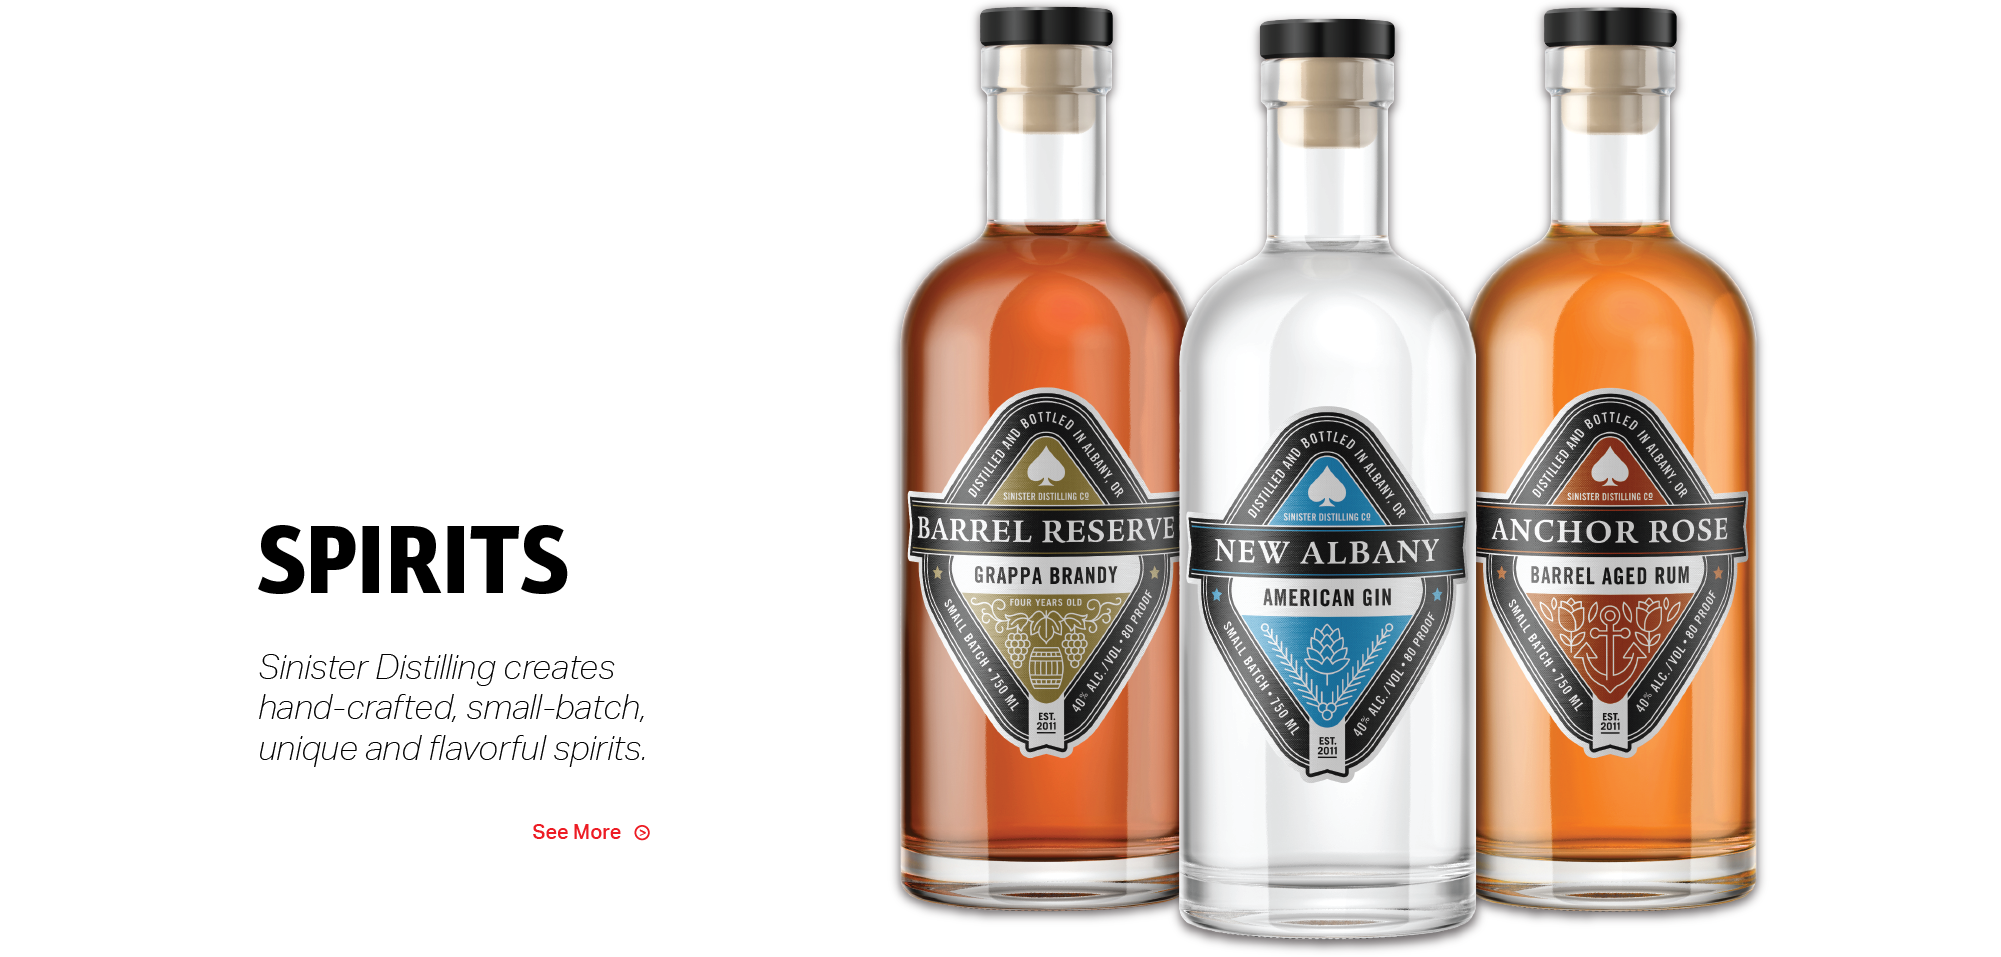 Sinister Distilling creates hand-crafted small-batch uniques and flavorful spirits.